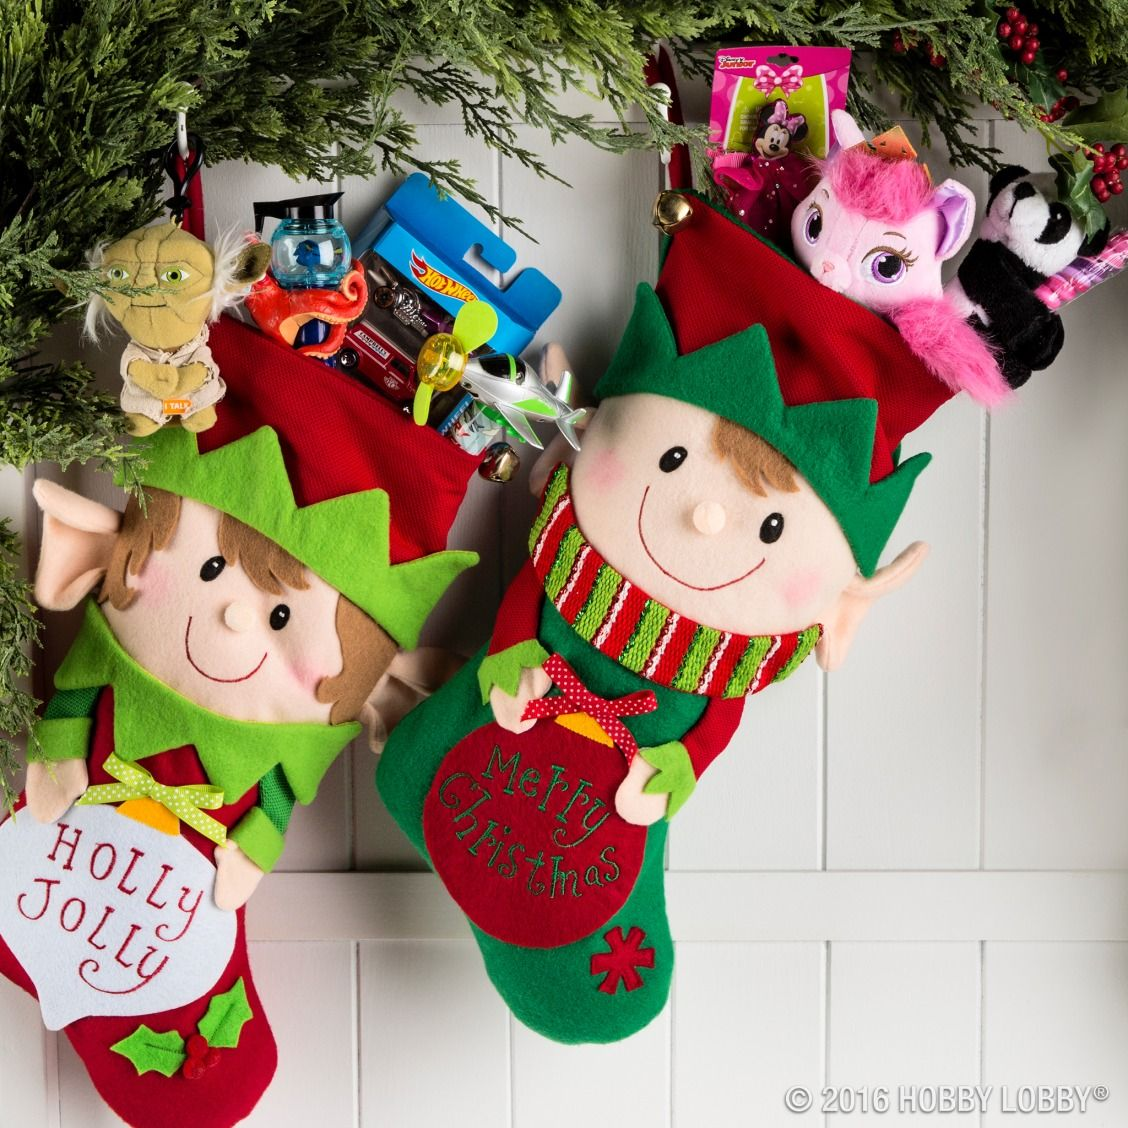 Give Your Little Ones A Holly Jolly Christmas With The Perfect Stocking Stuffers Craft Activities For Kids Crafts For Kids Craft Activities